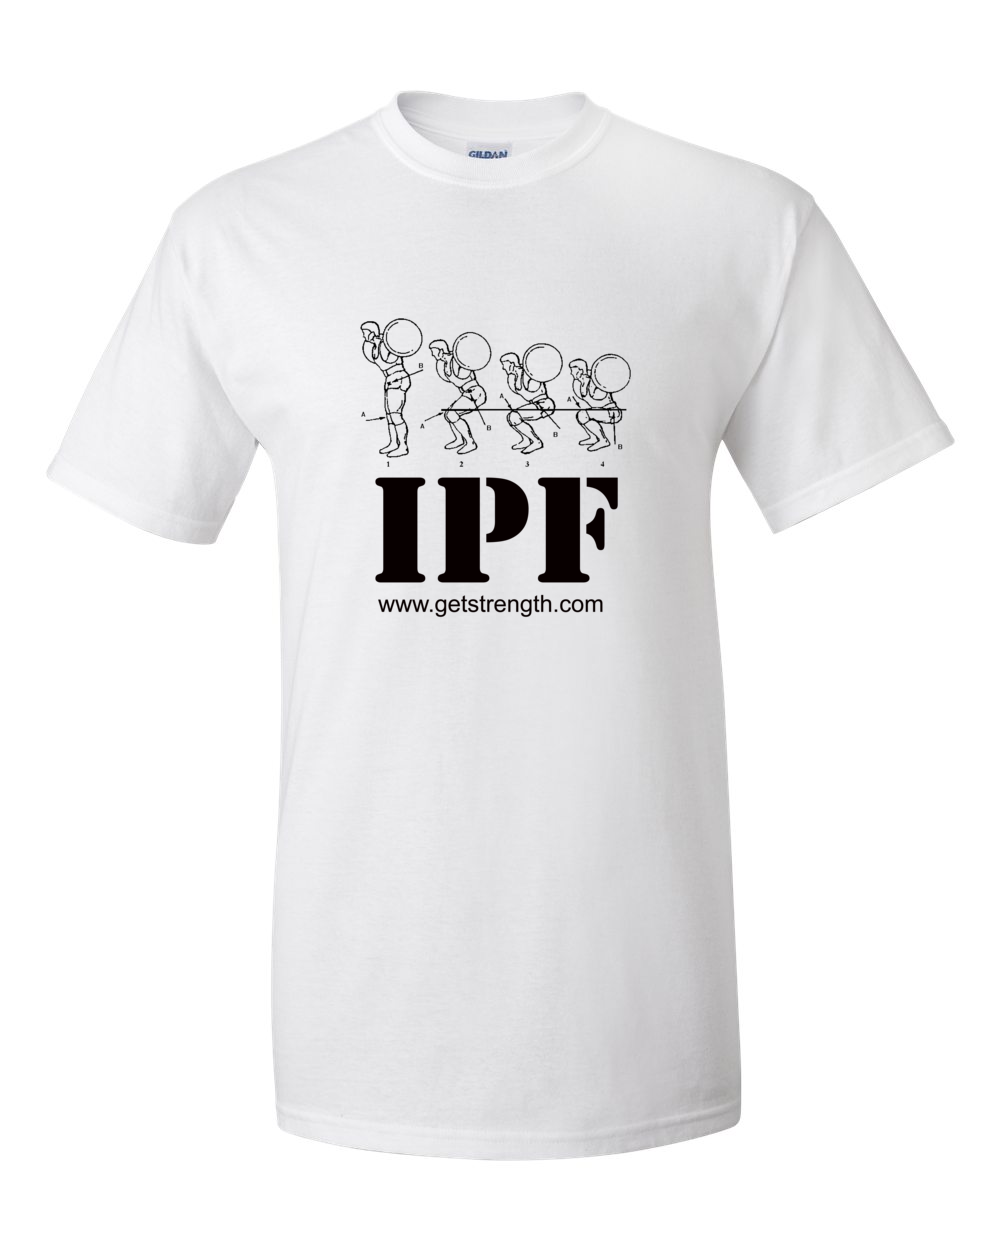 3282a0a8 IPF Powerlifting Training T-Shirt White - Light | Online Personal ...